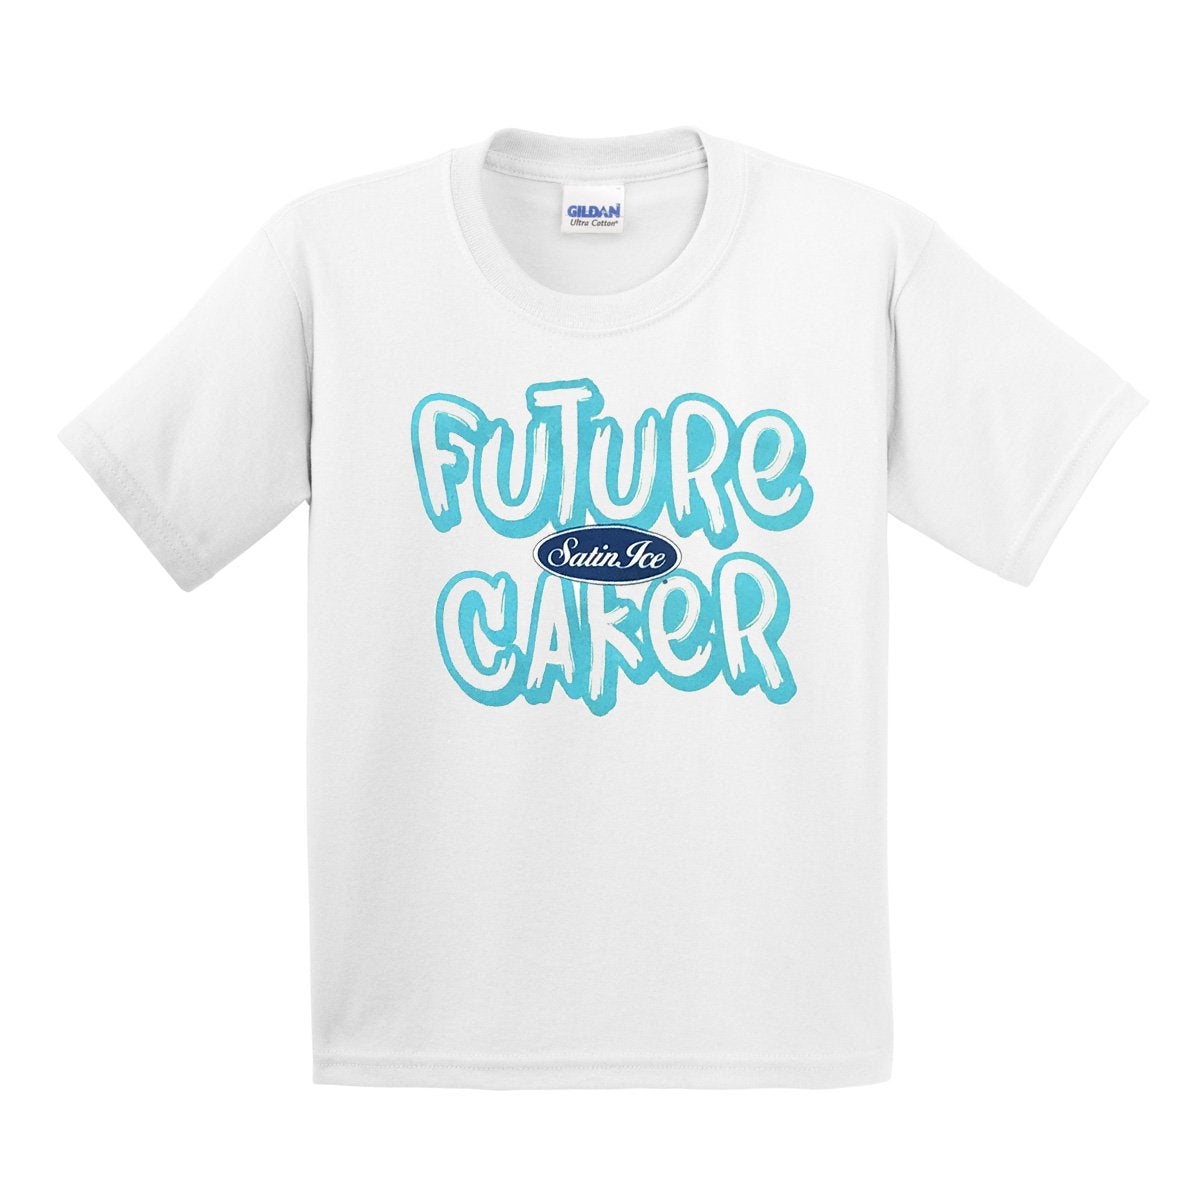 "Satin Ice ""Future Caker""Kids T-Shirt • White - Satin Ice"